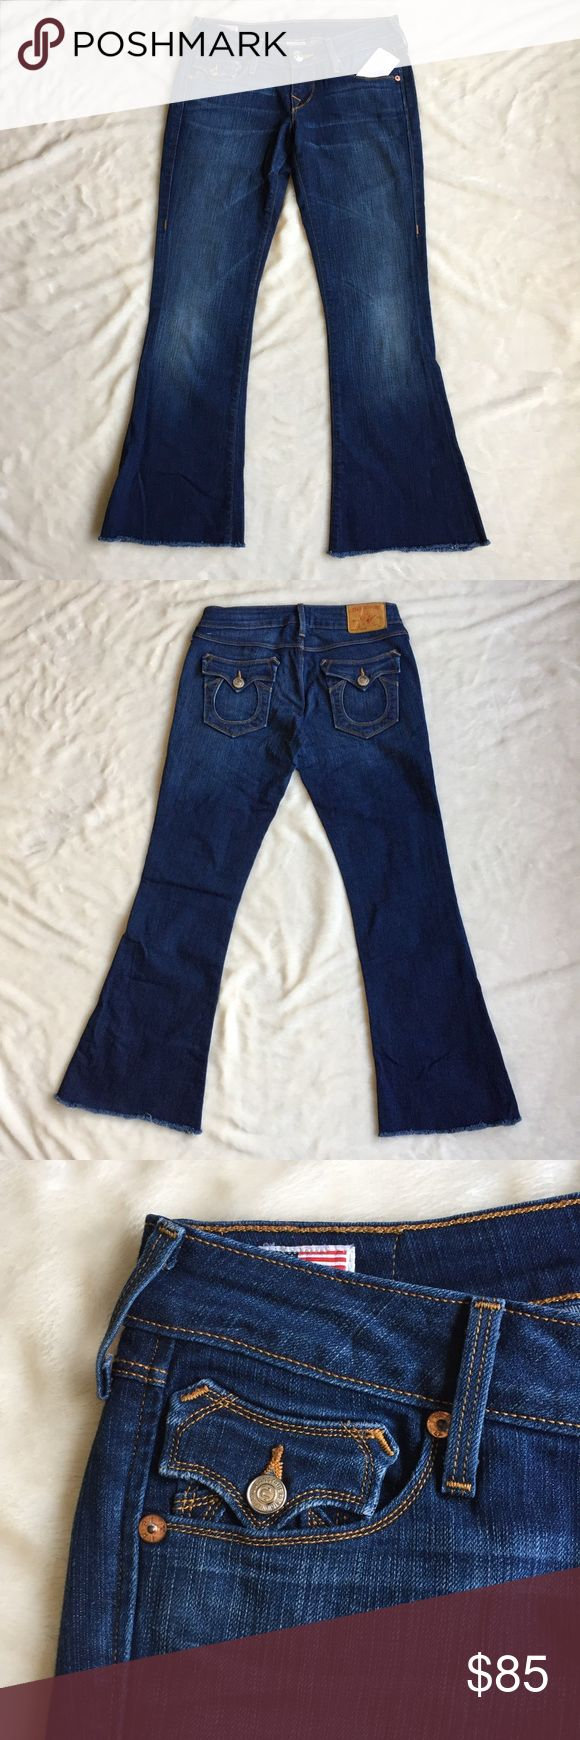 True Religion Karlie Bell Bottom Capri Crop Jeans True Religion New without tags, Dark Blue Karlie Bell Bottom Capri Cropped Jeans. True Religion Jeans